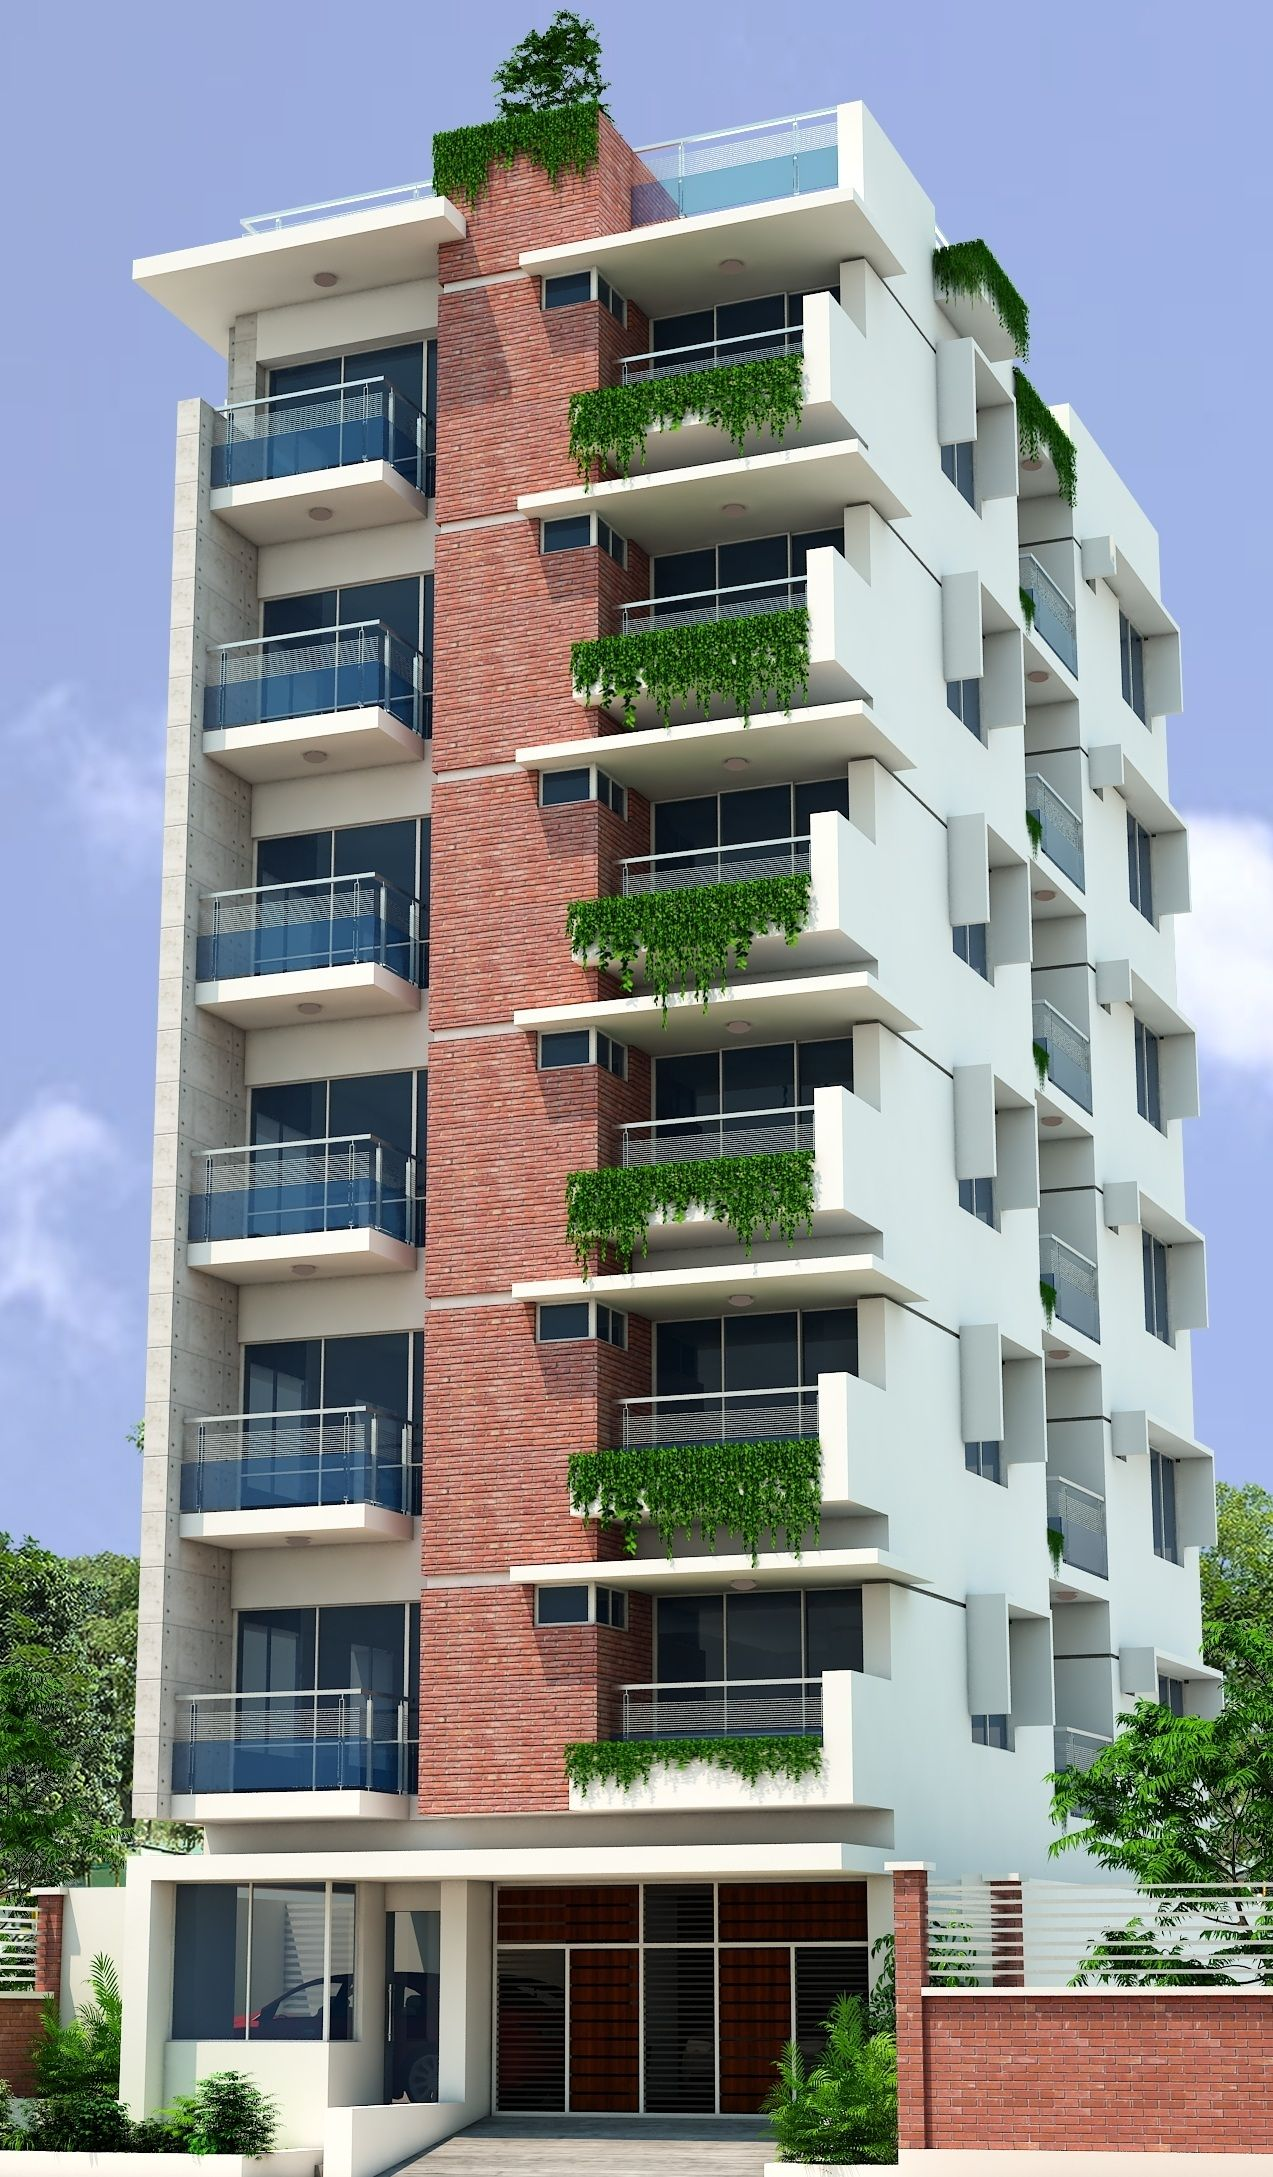 7 Storied Residential Building 3d View Facade Architecture